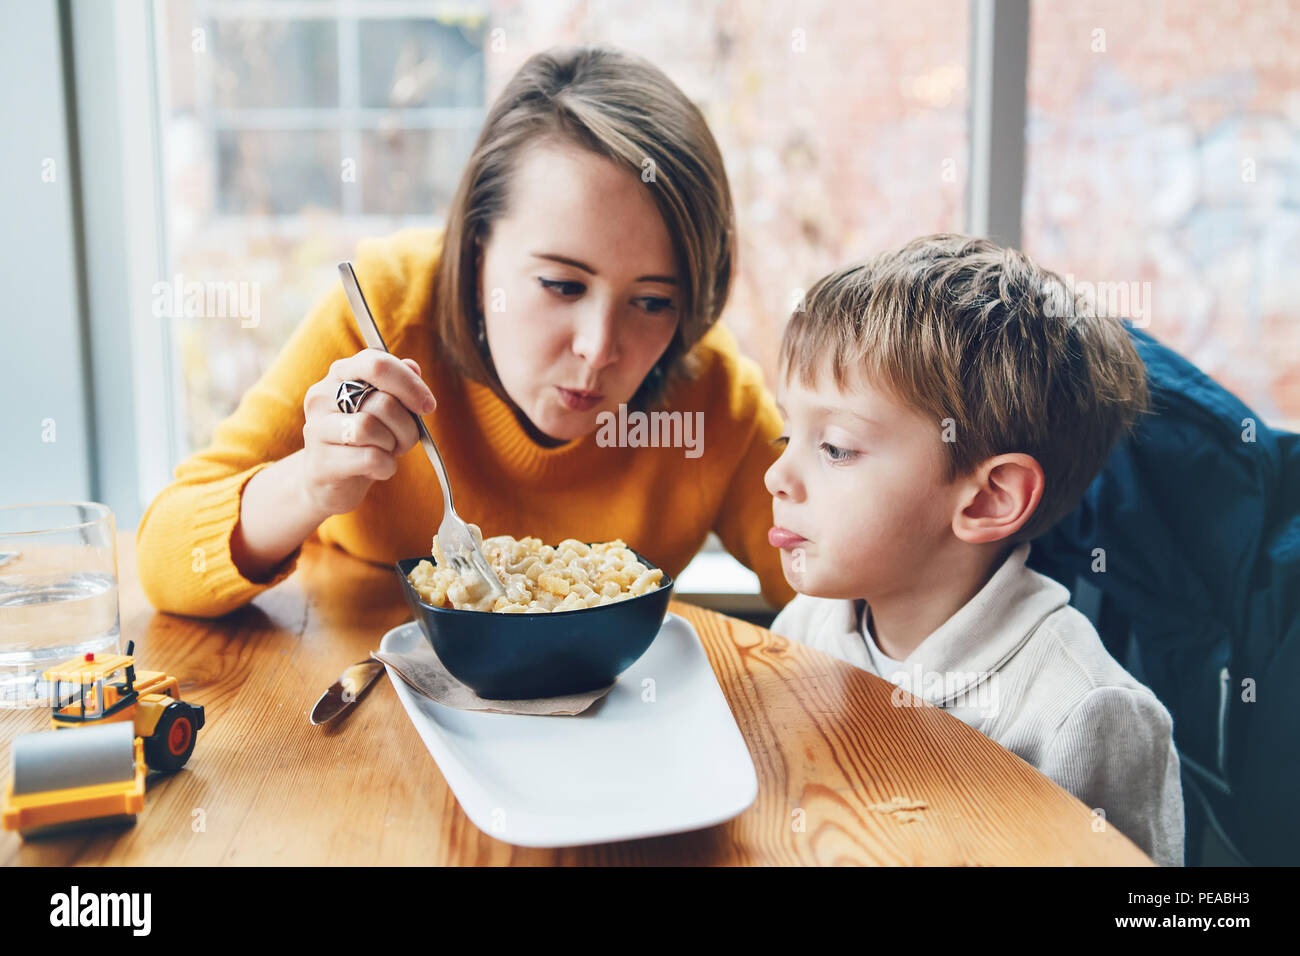 Portrait of white Caucasian happy family, mother and son, sitting in restaurant cafe at table, feeding eating pasta spaghetti, authentic lifestyle - Stock Image